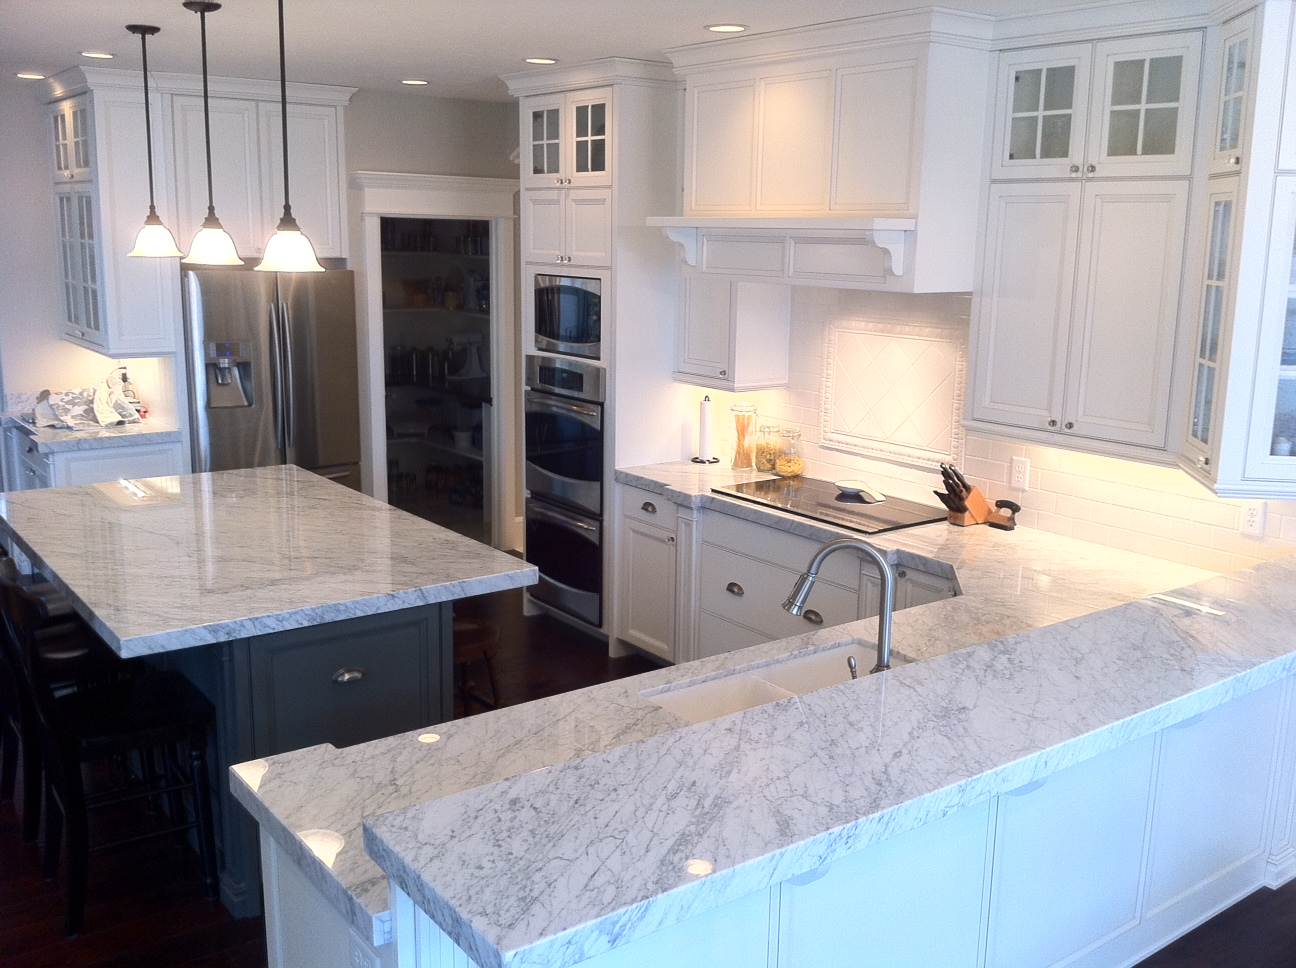 The Granite Gurus Carrara Marble Kitchen from MGS by Design